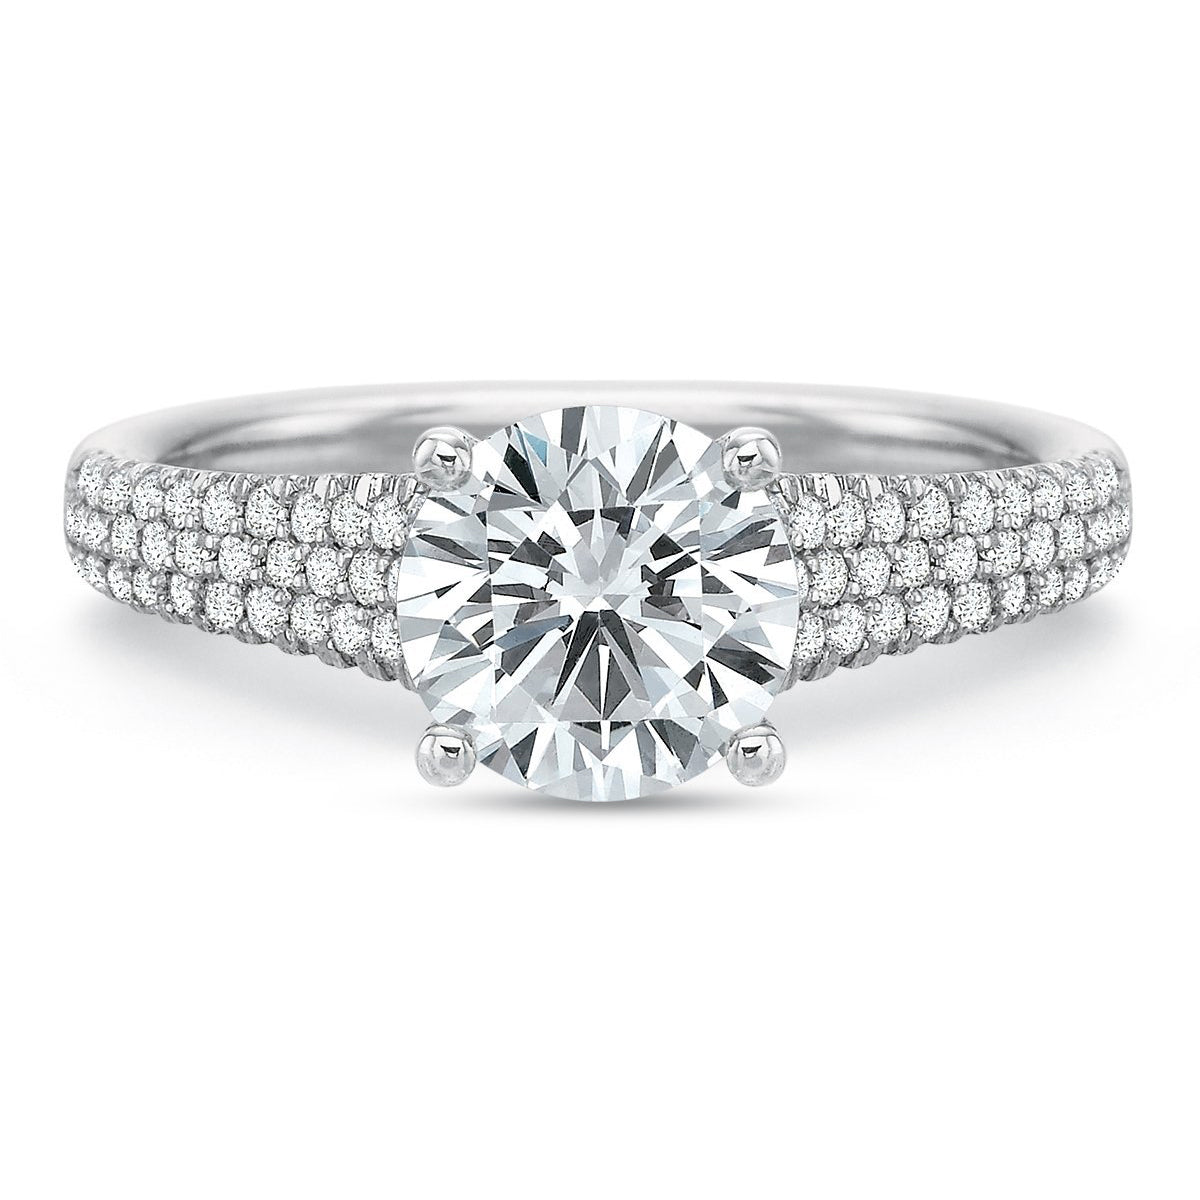 Platinum Classic Modern Tapered Pave Shank Engagement Ring Setting